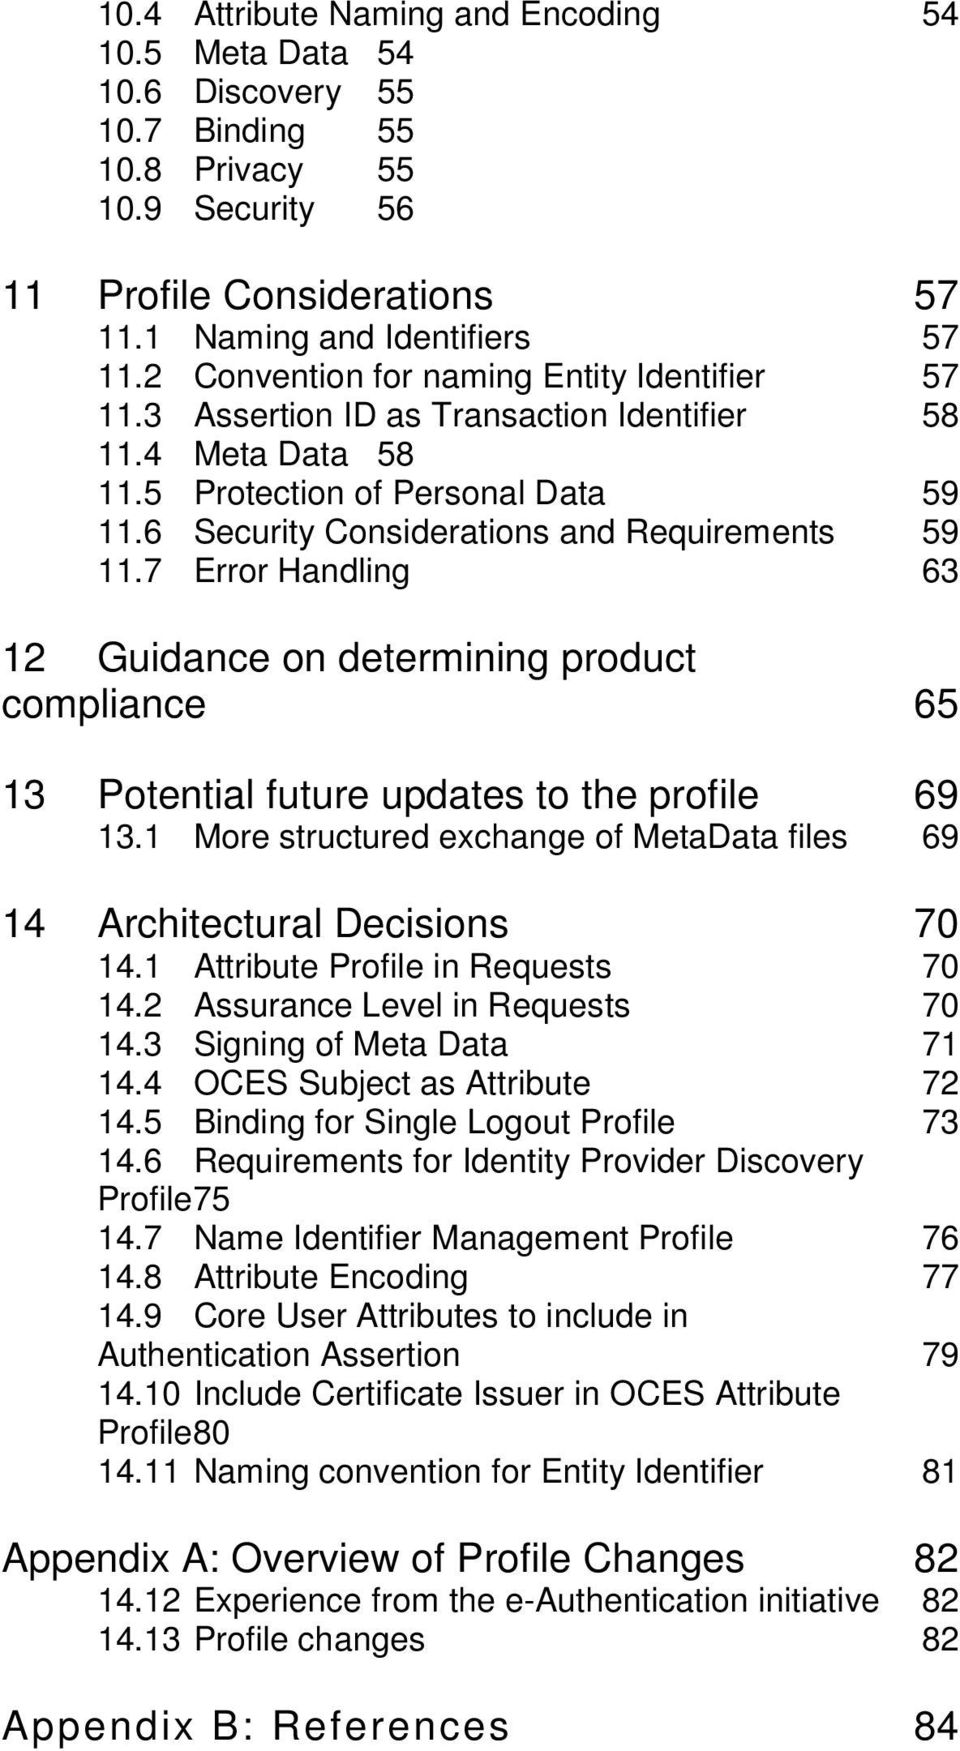 7 Error Handling 63 12 Guidance on determining product compliance 65 13 Potential future updates to the profile 69 13.1 More structured exchange of MetaData files 69 14 Architectural Decisions 70 14.